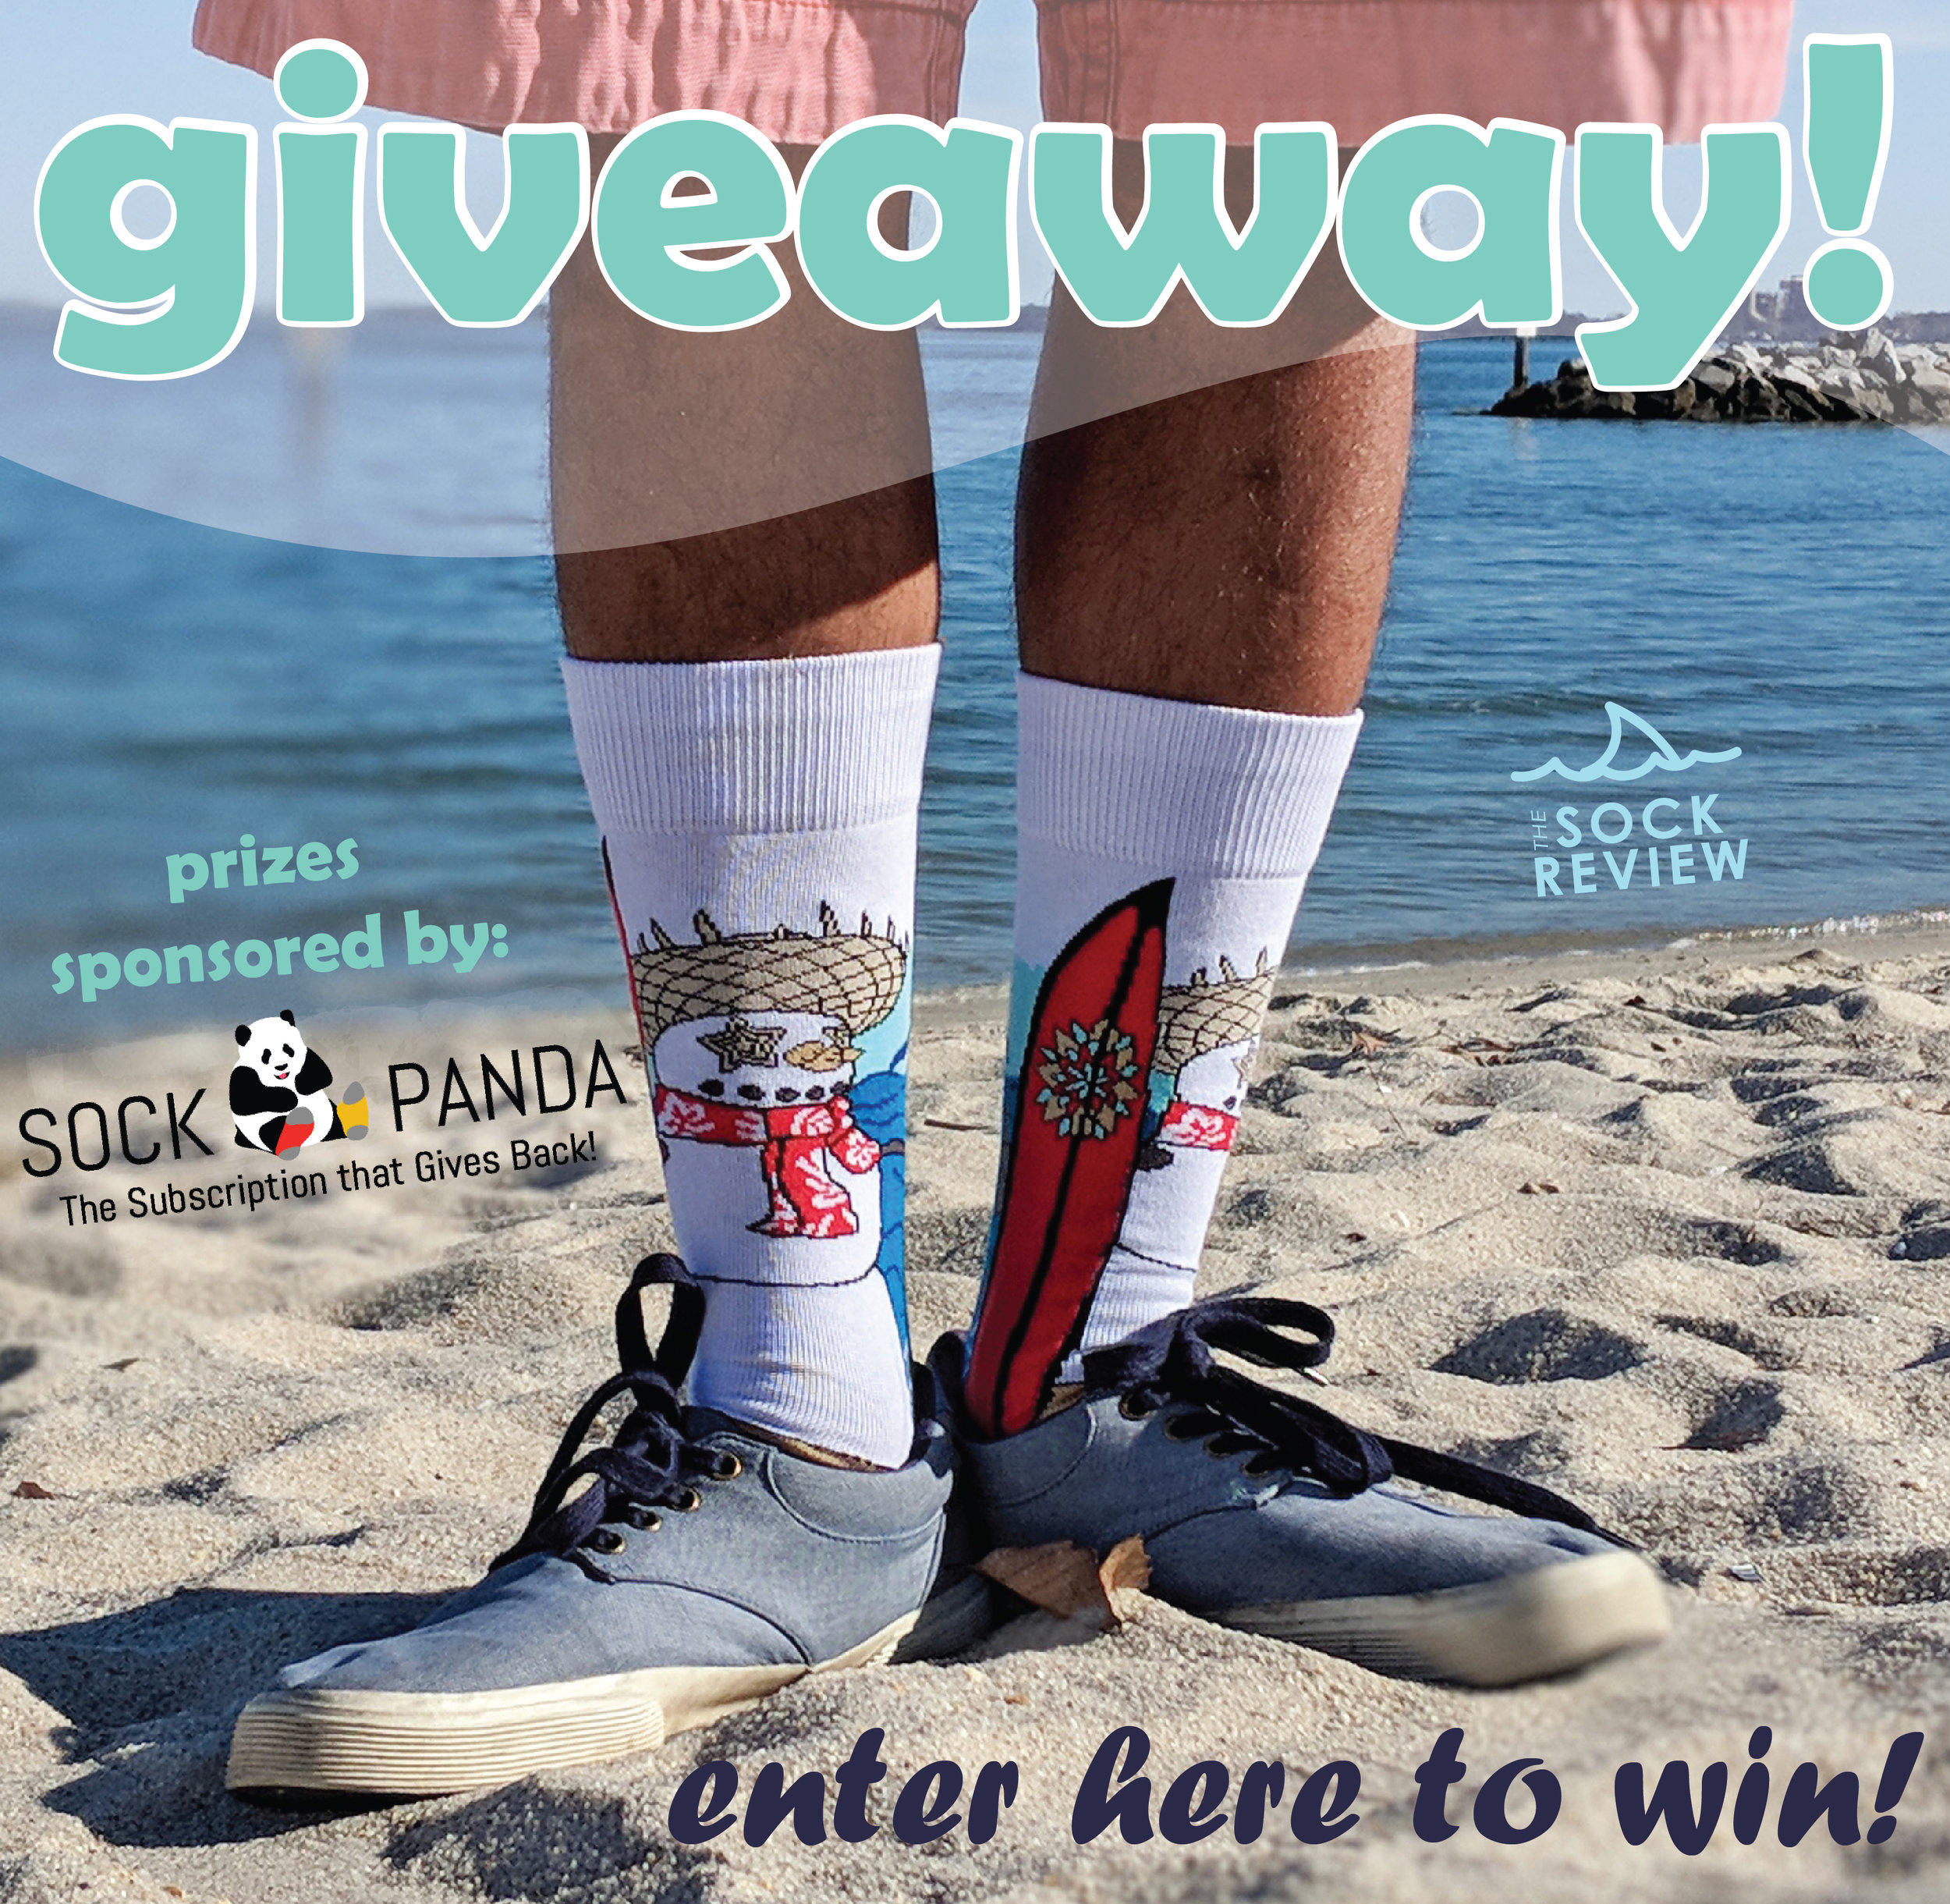 Giveaway Prizes sponsored by Sock Panda! Entries start today - head on over to Instagram to get the details.